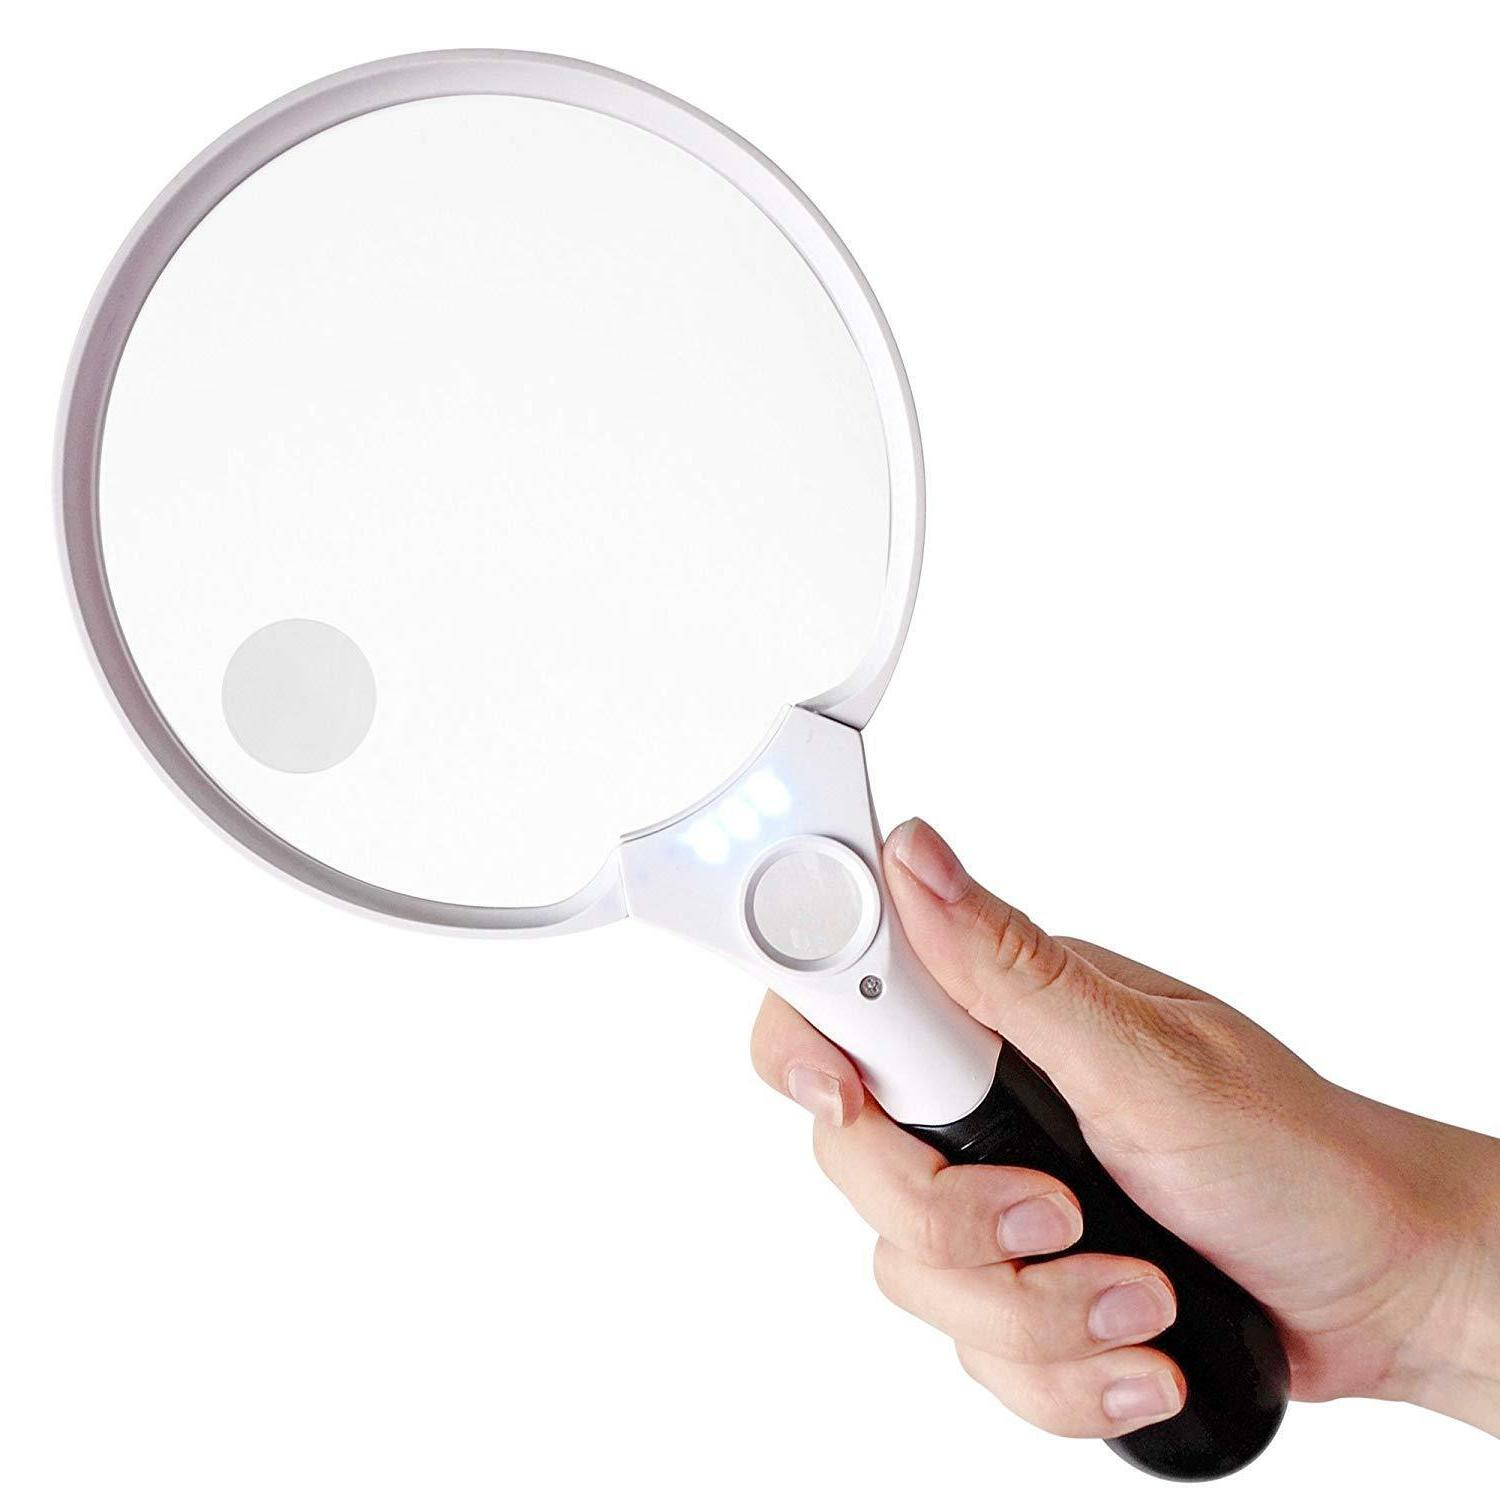 handheld magnifying glass